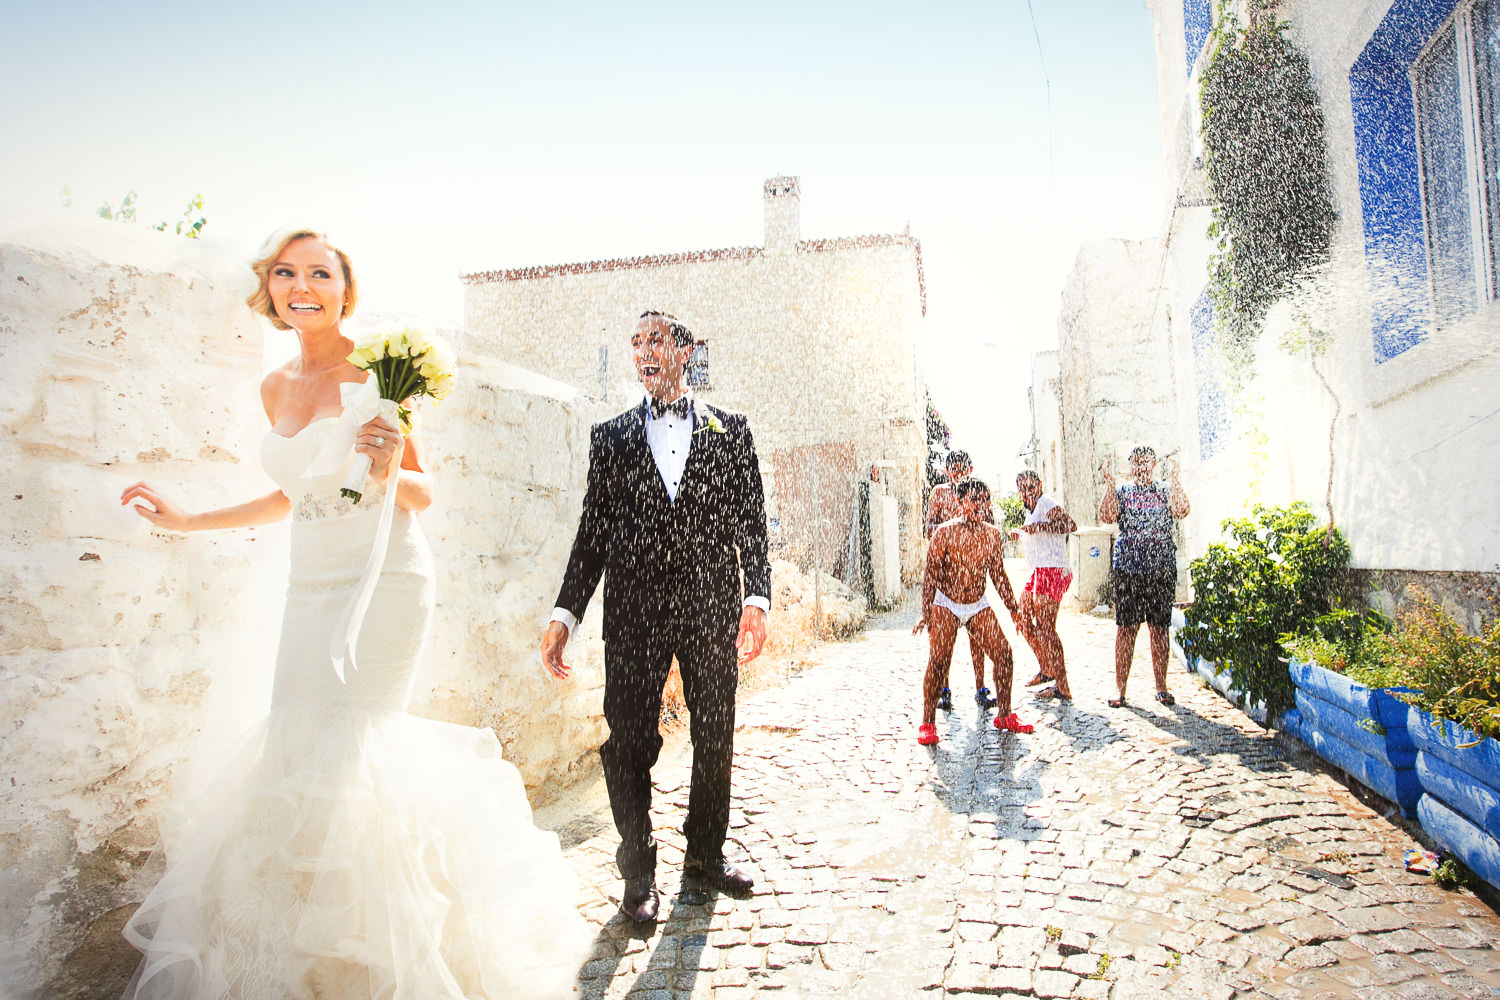 Turkey Wedding - Great shot in Acati